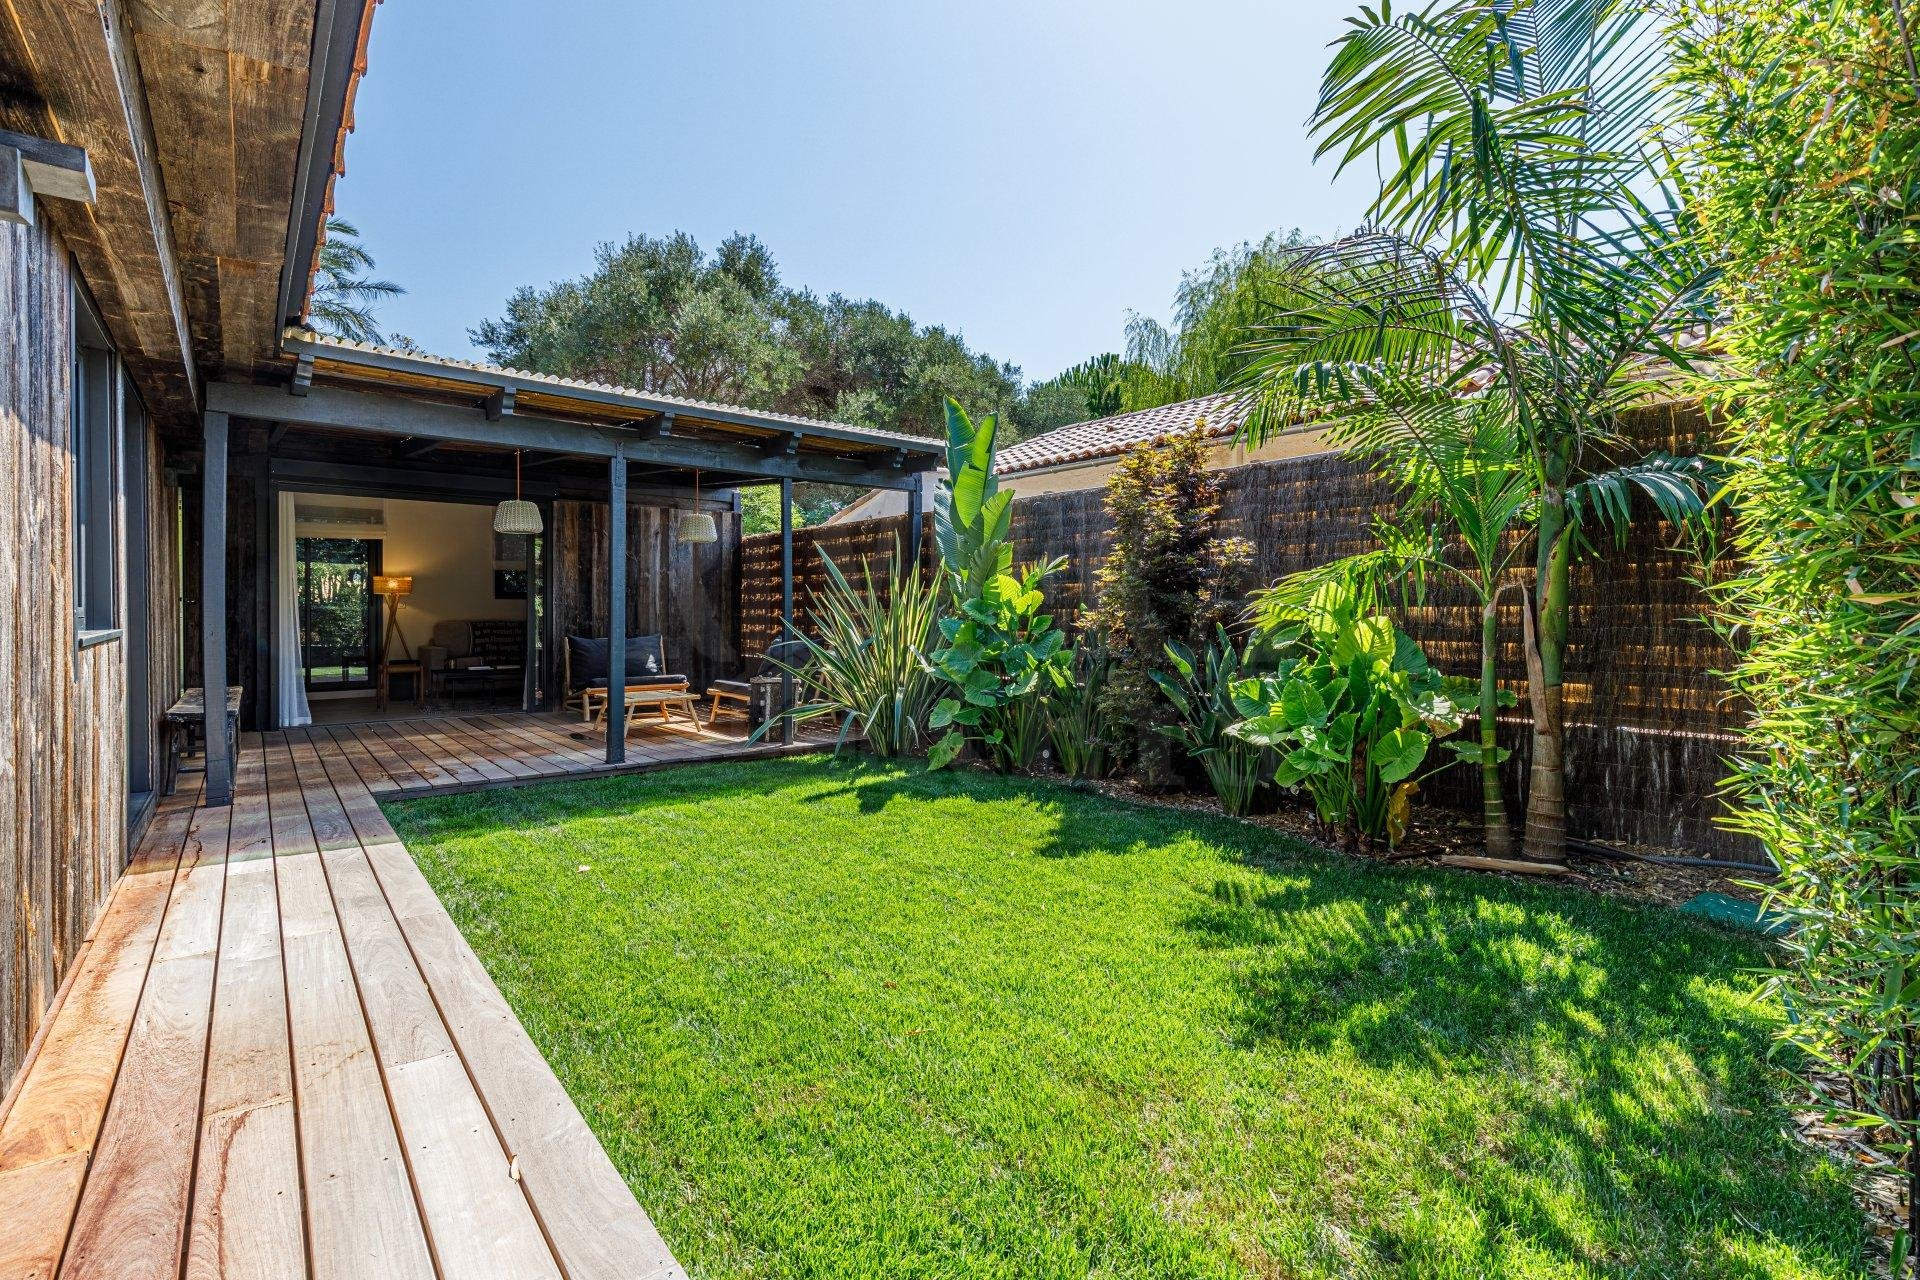 Small house with garden-terrace, 200 m from the beaches of Cap d'Antibes